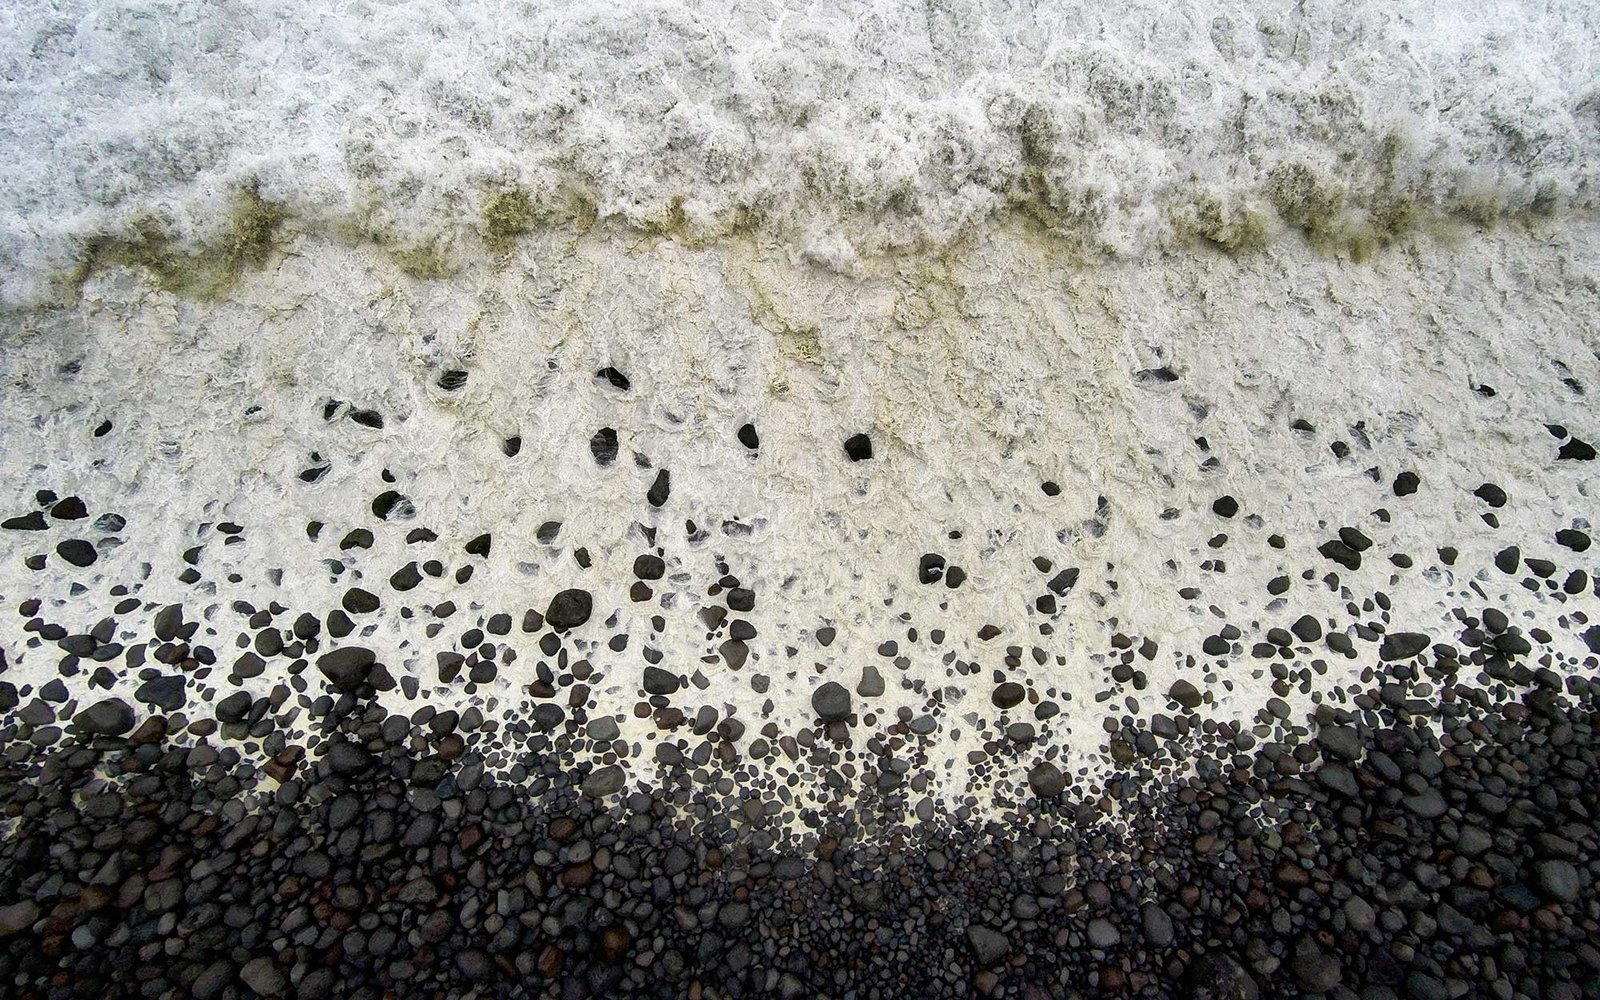 Waves breaking on black sand beach, Iceland